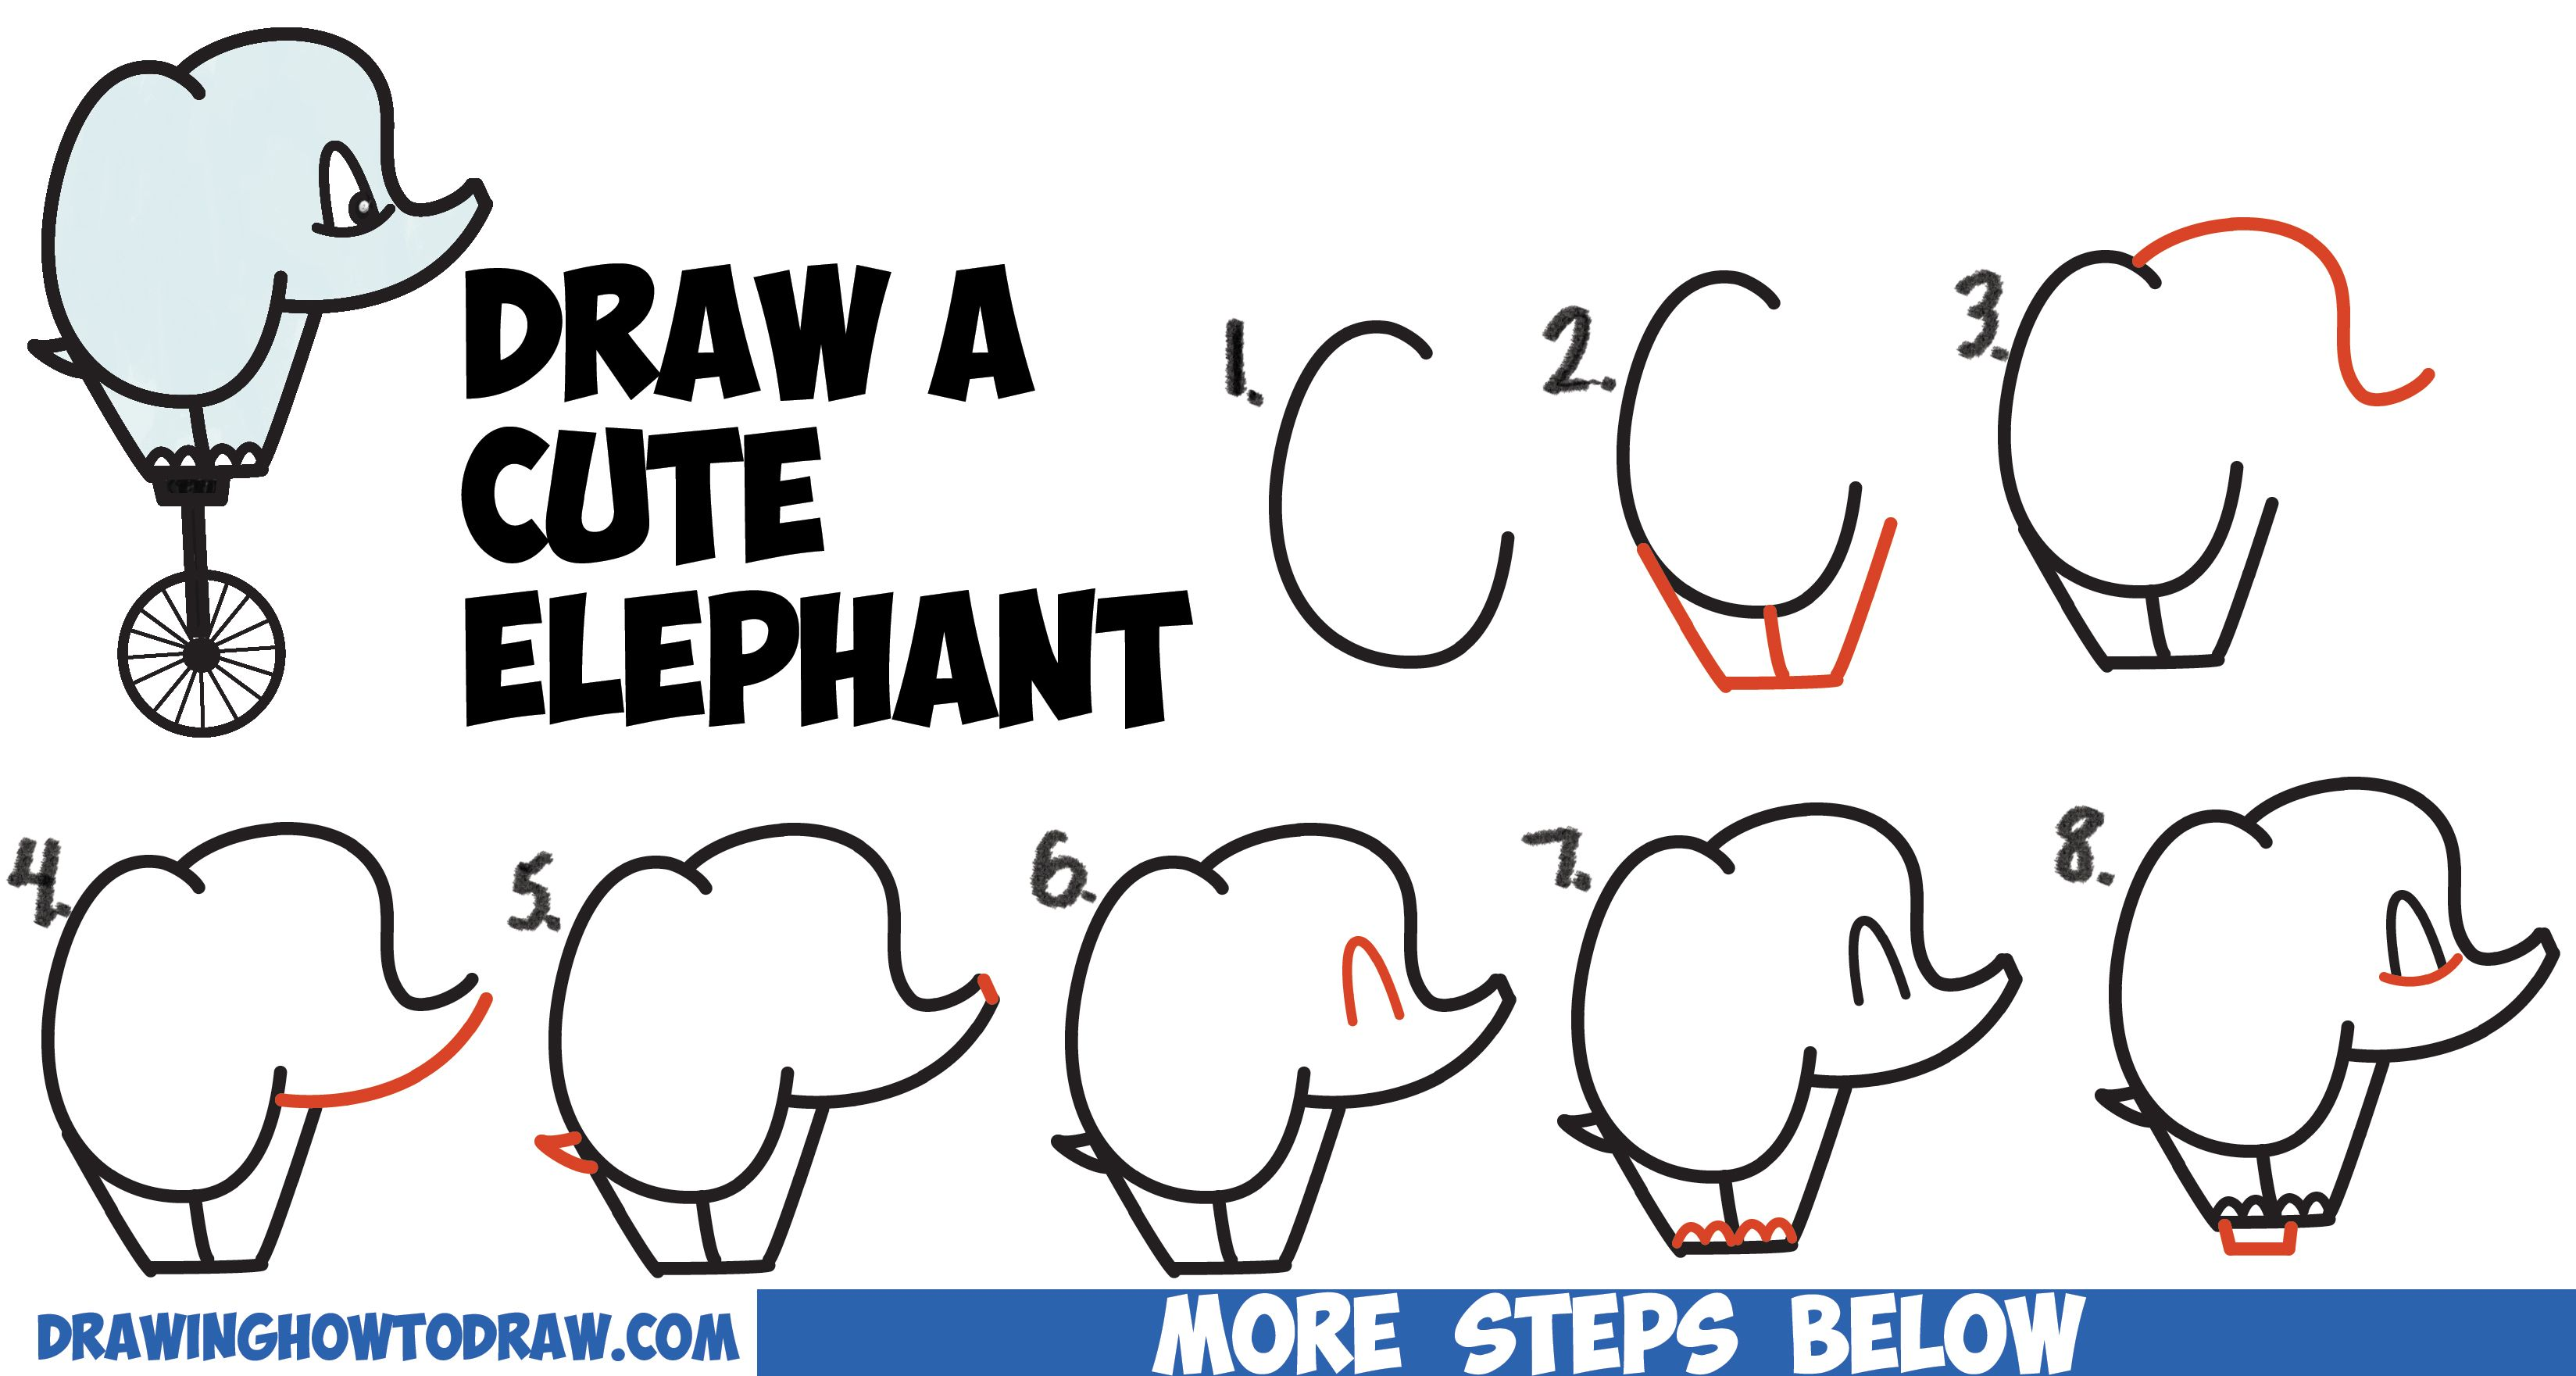 How To Draw A Cute Cartoon Baby Elephant Riding A Unicycle From Alphabet Letters Easy Step By Step Drawing Lesson For Kids How To Draw Step By Step Drawing Tu